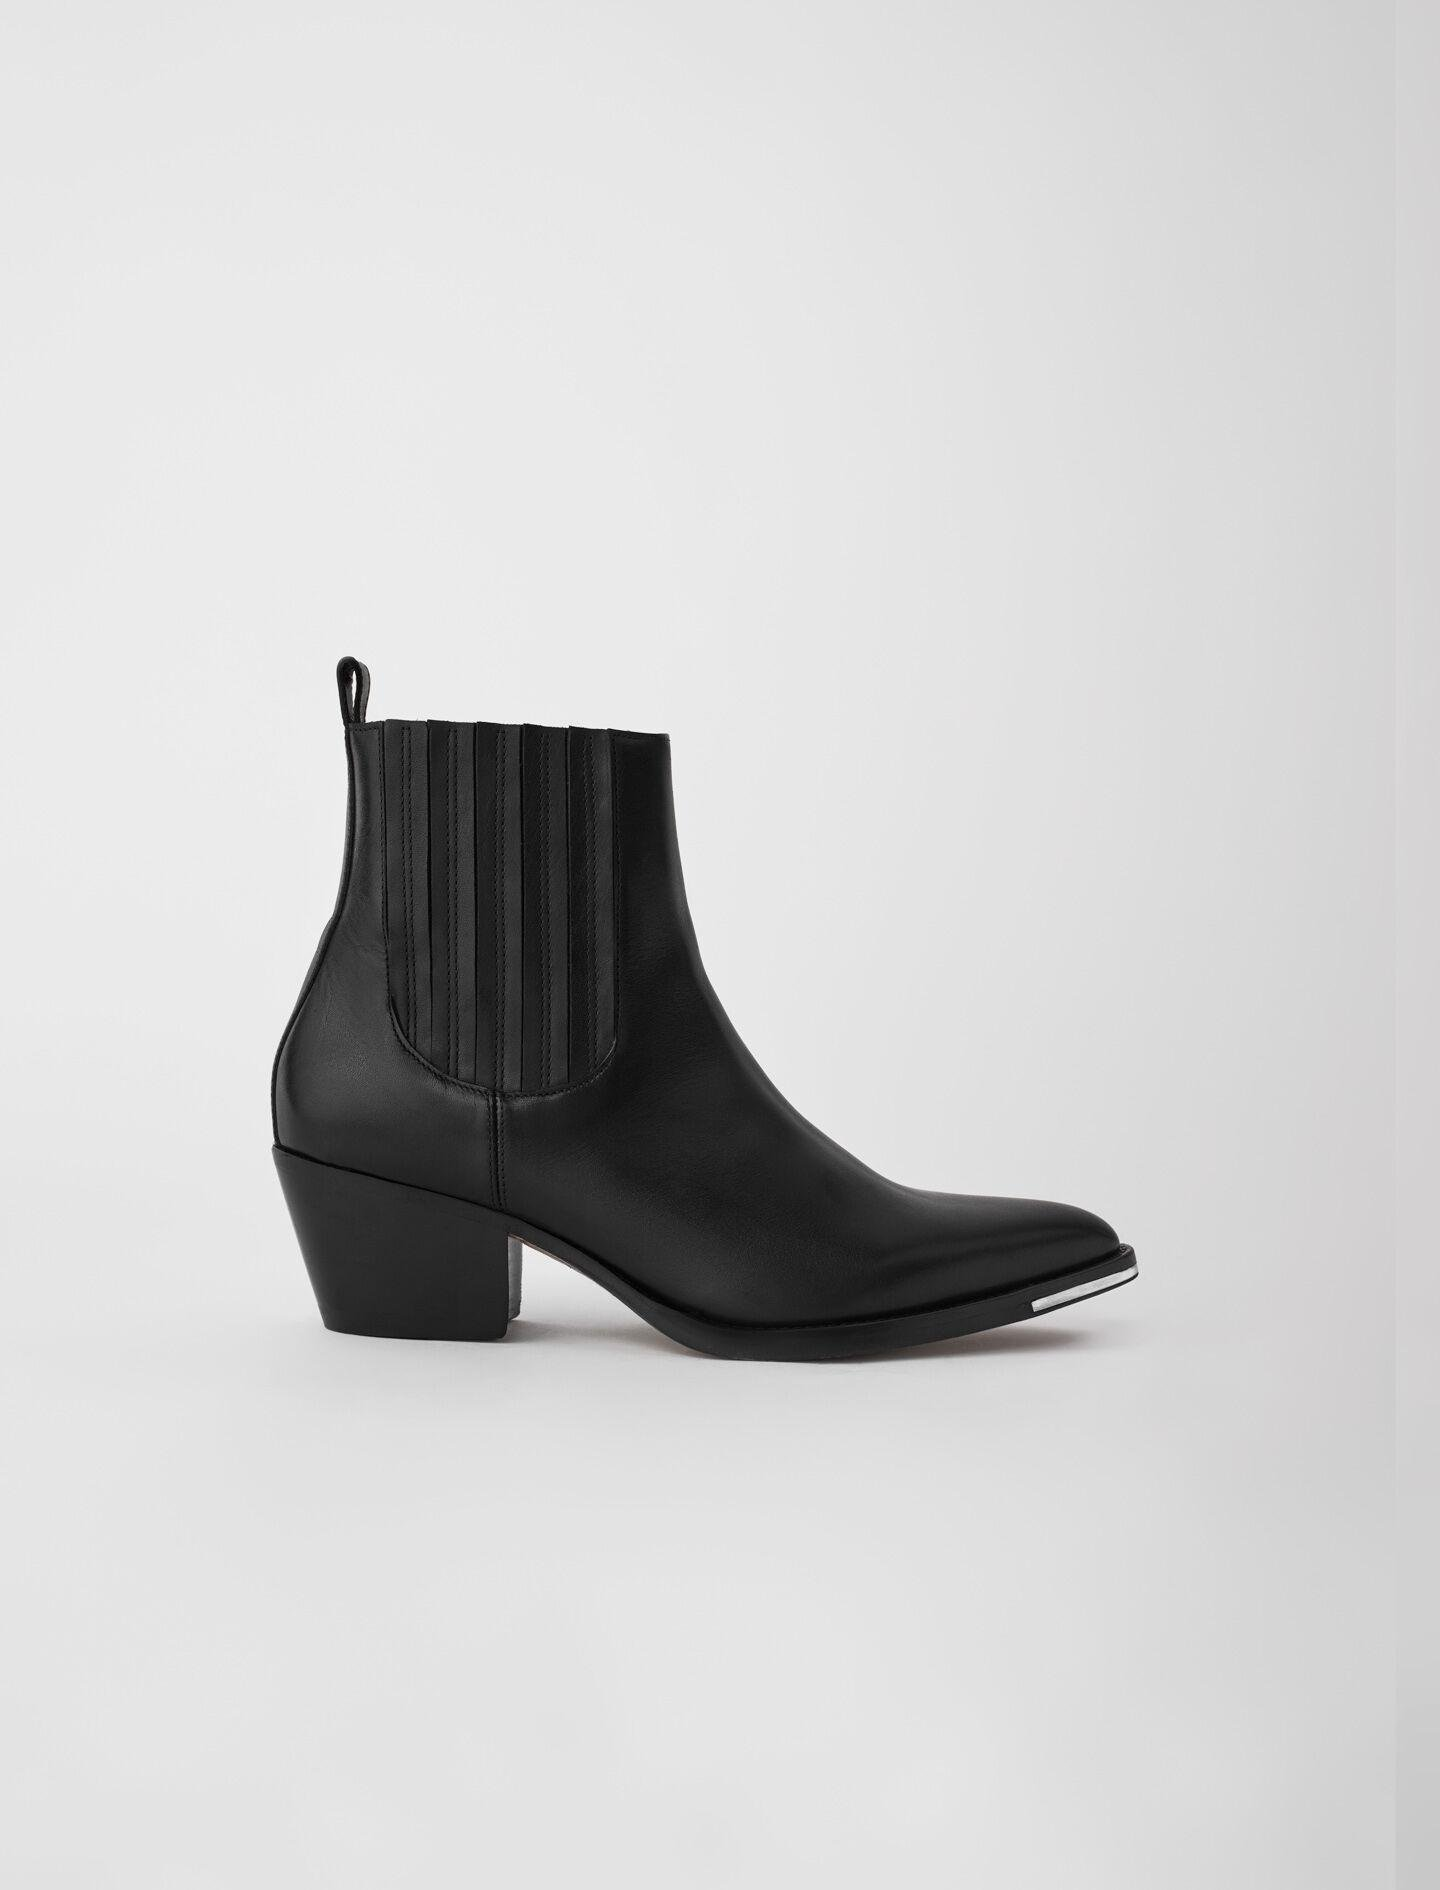 WESTERN-STYLE ANKLE BOOTS IN LEATHER